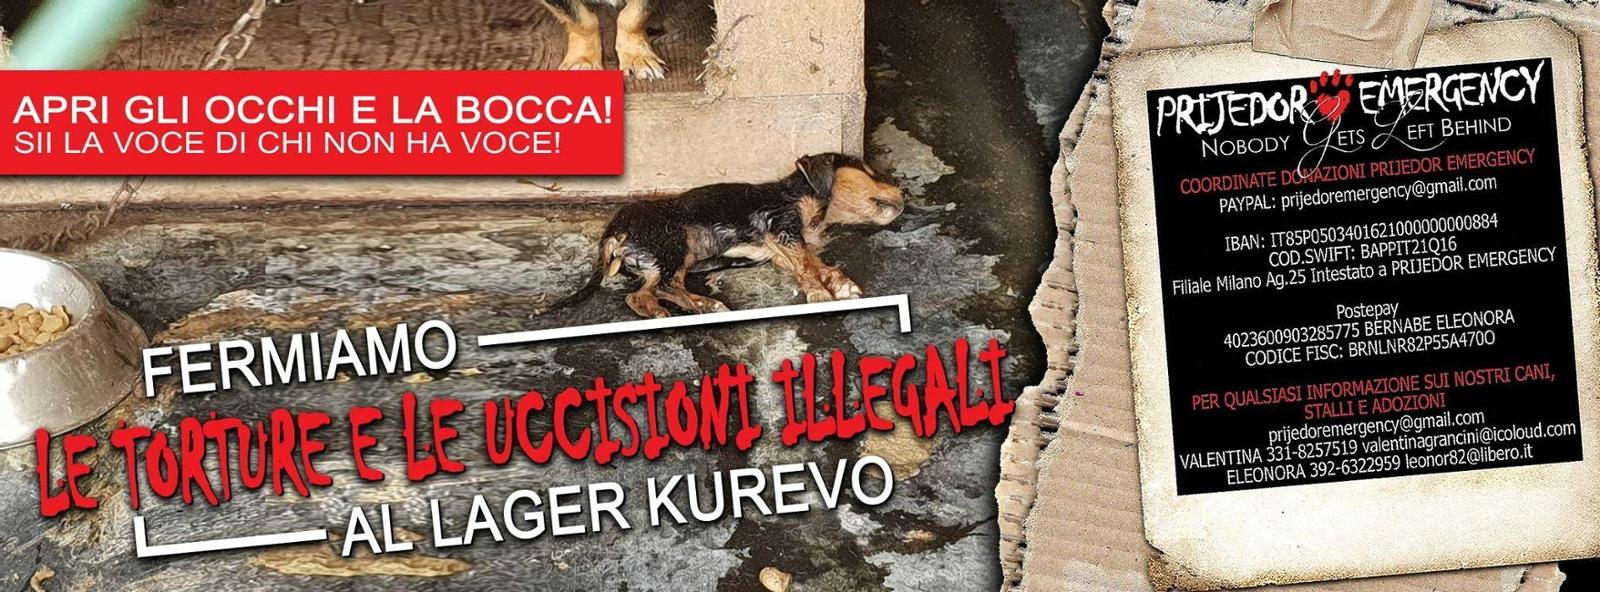 Prijedor Emergency - daily food for dogs in shelter in Bosnia